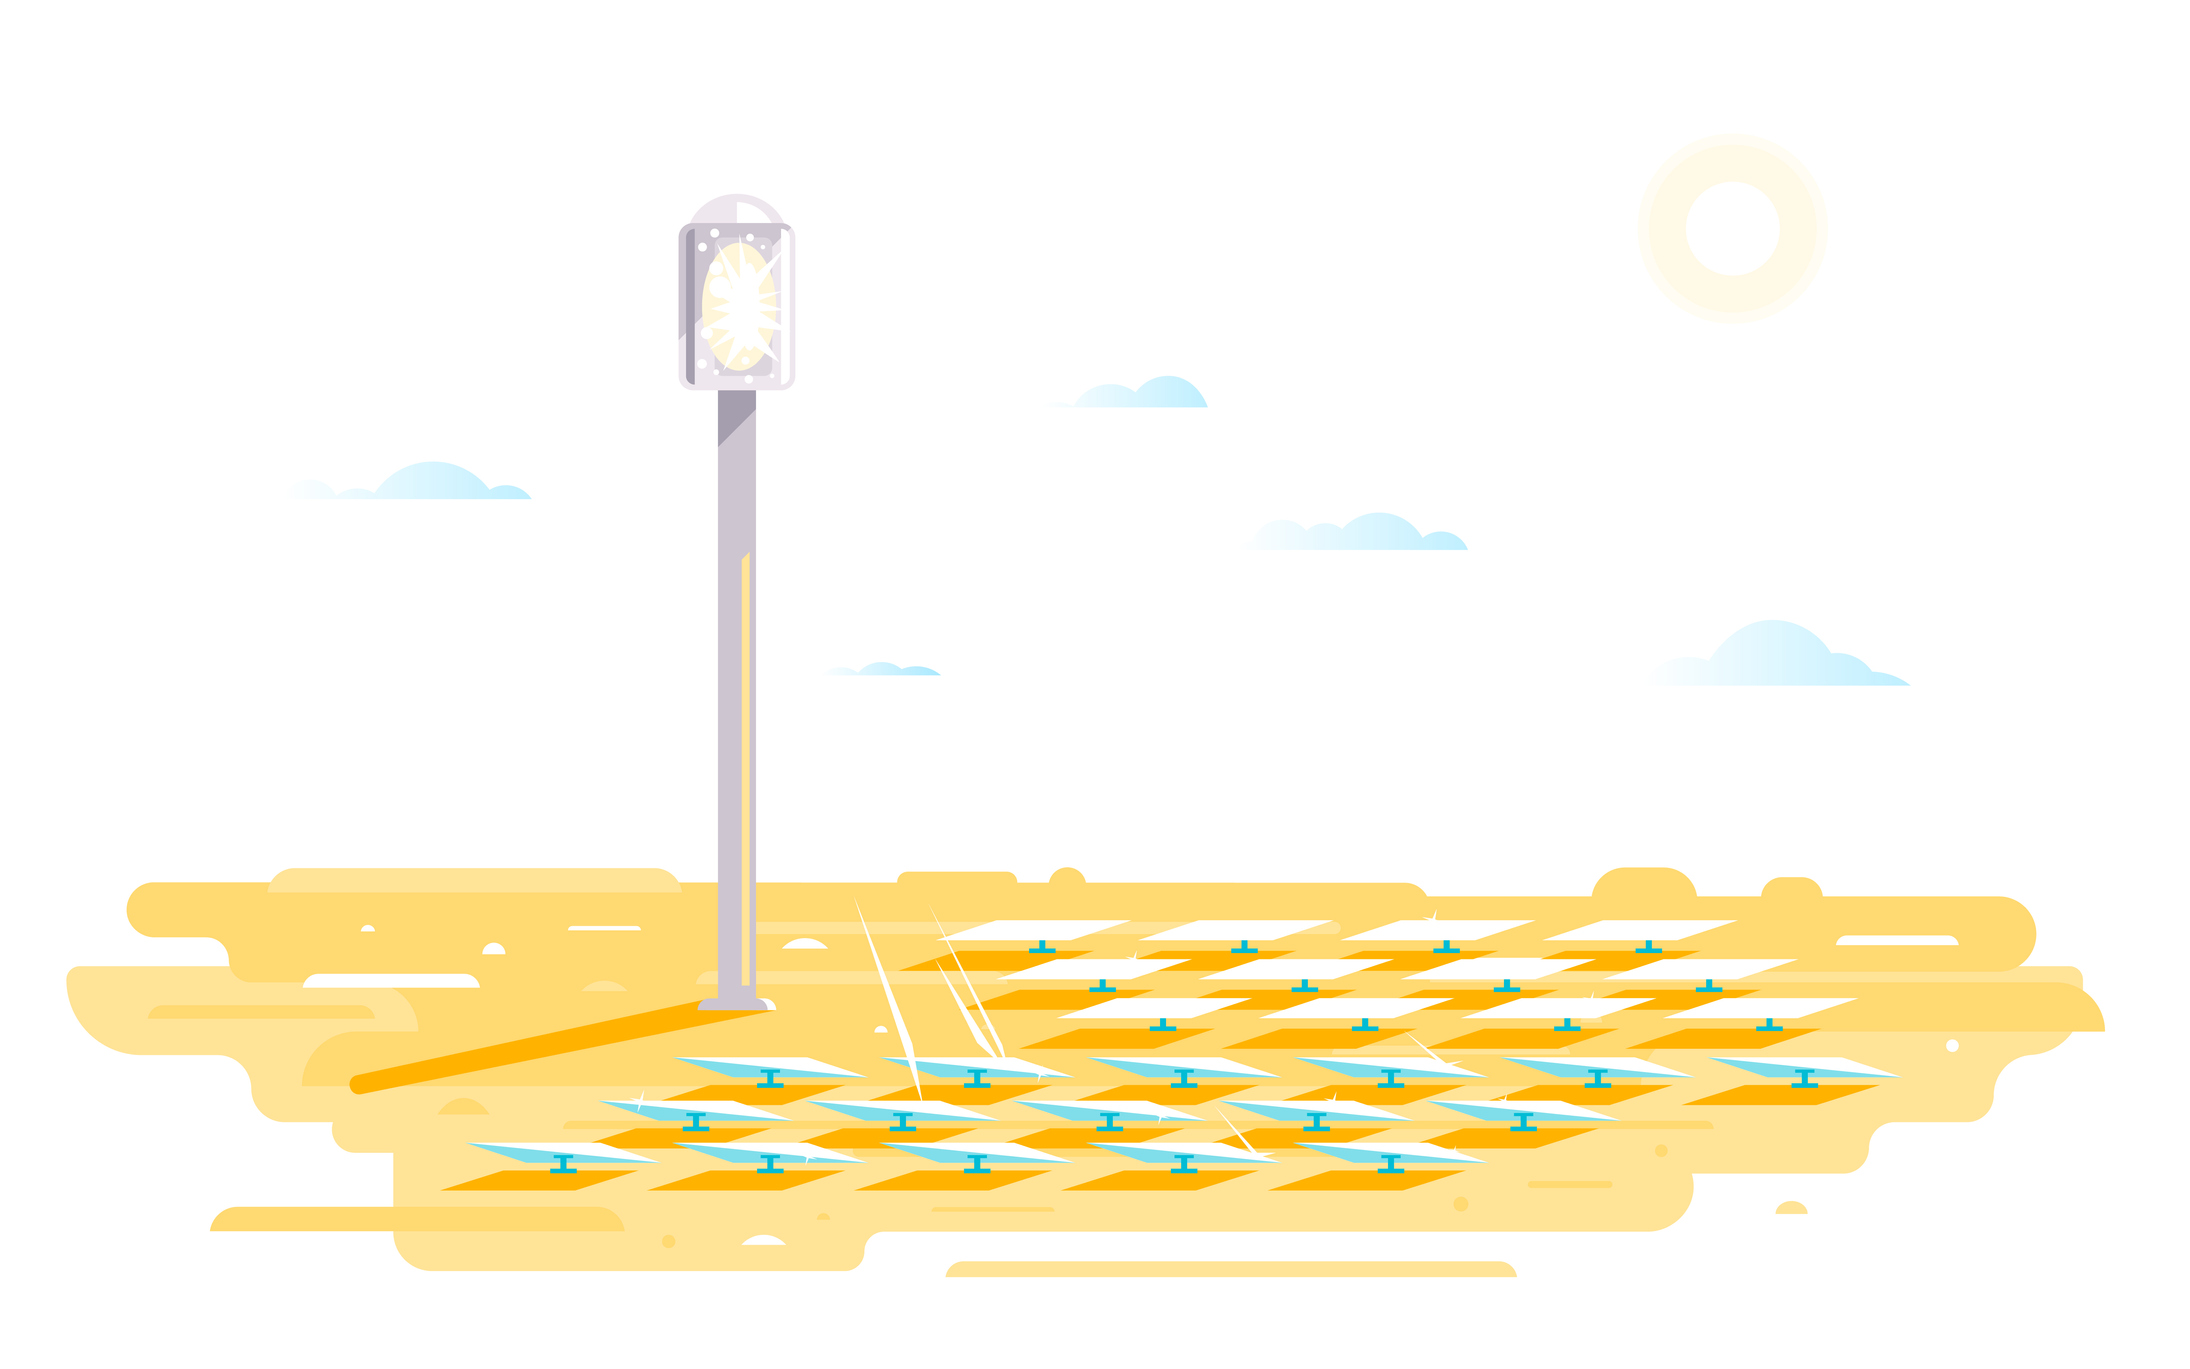 An illustration of a heliostat with lots of flat sun-tracking mirrors in a desert.